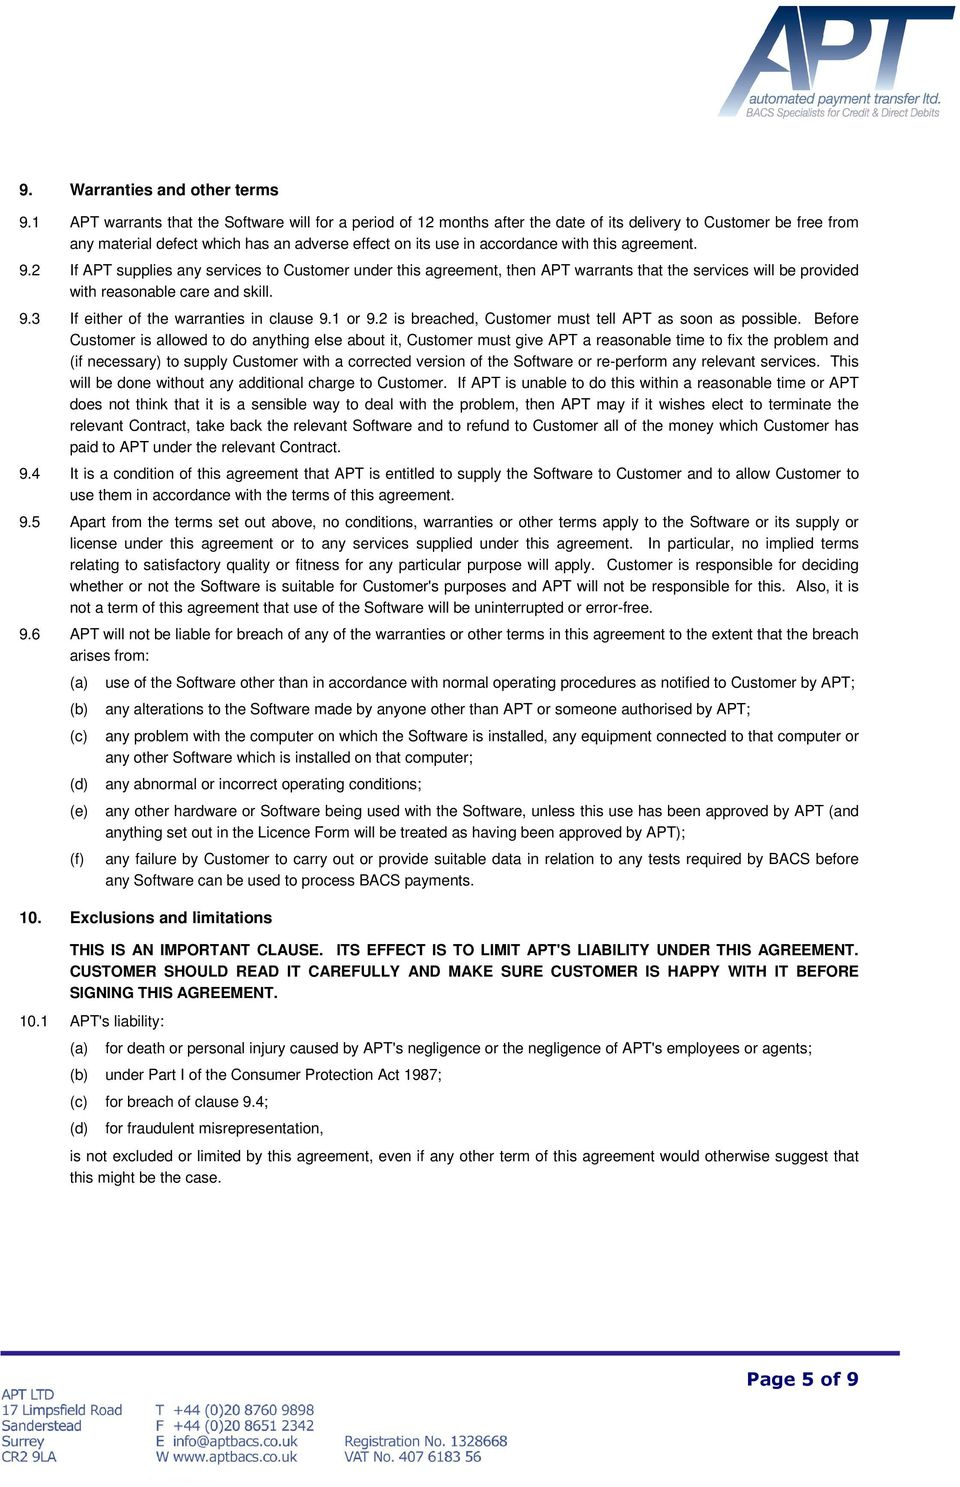 this agreement. 9.2 If APT supplies any services to Customer under this agreement, then APT warrants that the services will be provided with reasonable care and skill. 9.3 If either of the warranties in clause 9.